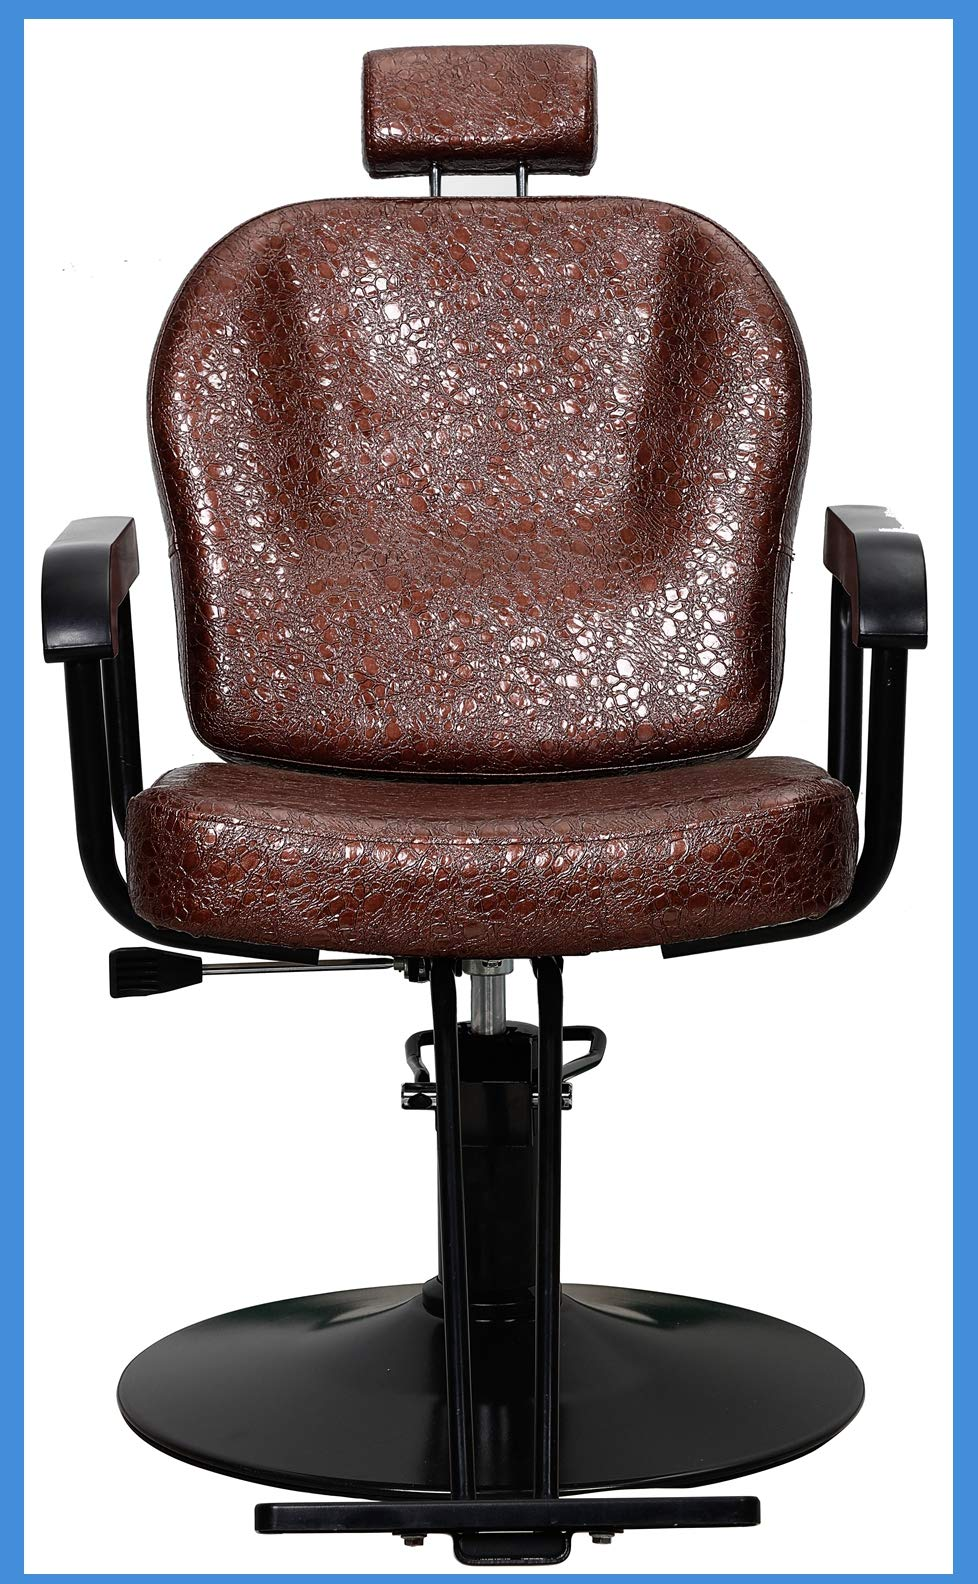 All Purpose Salon Barber Chair Brown Color with Titling Function and Hydraulic Lifting System for Hair Cutting Styling Shampoo Shave Waxing Makeup by BIGARM